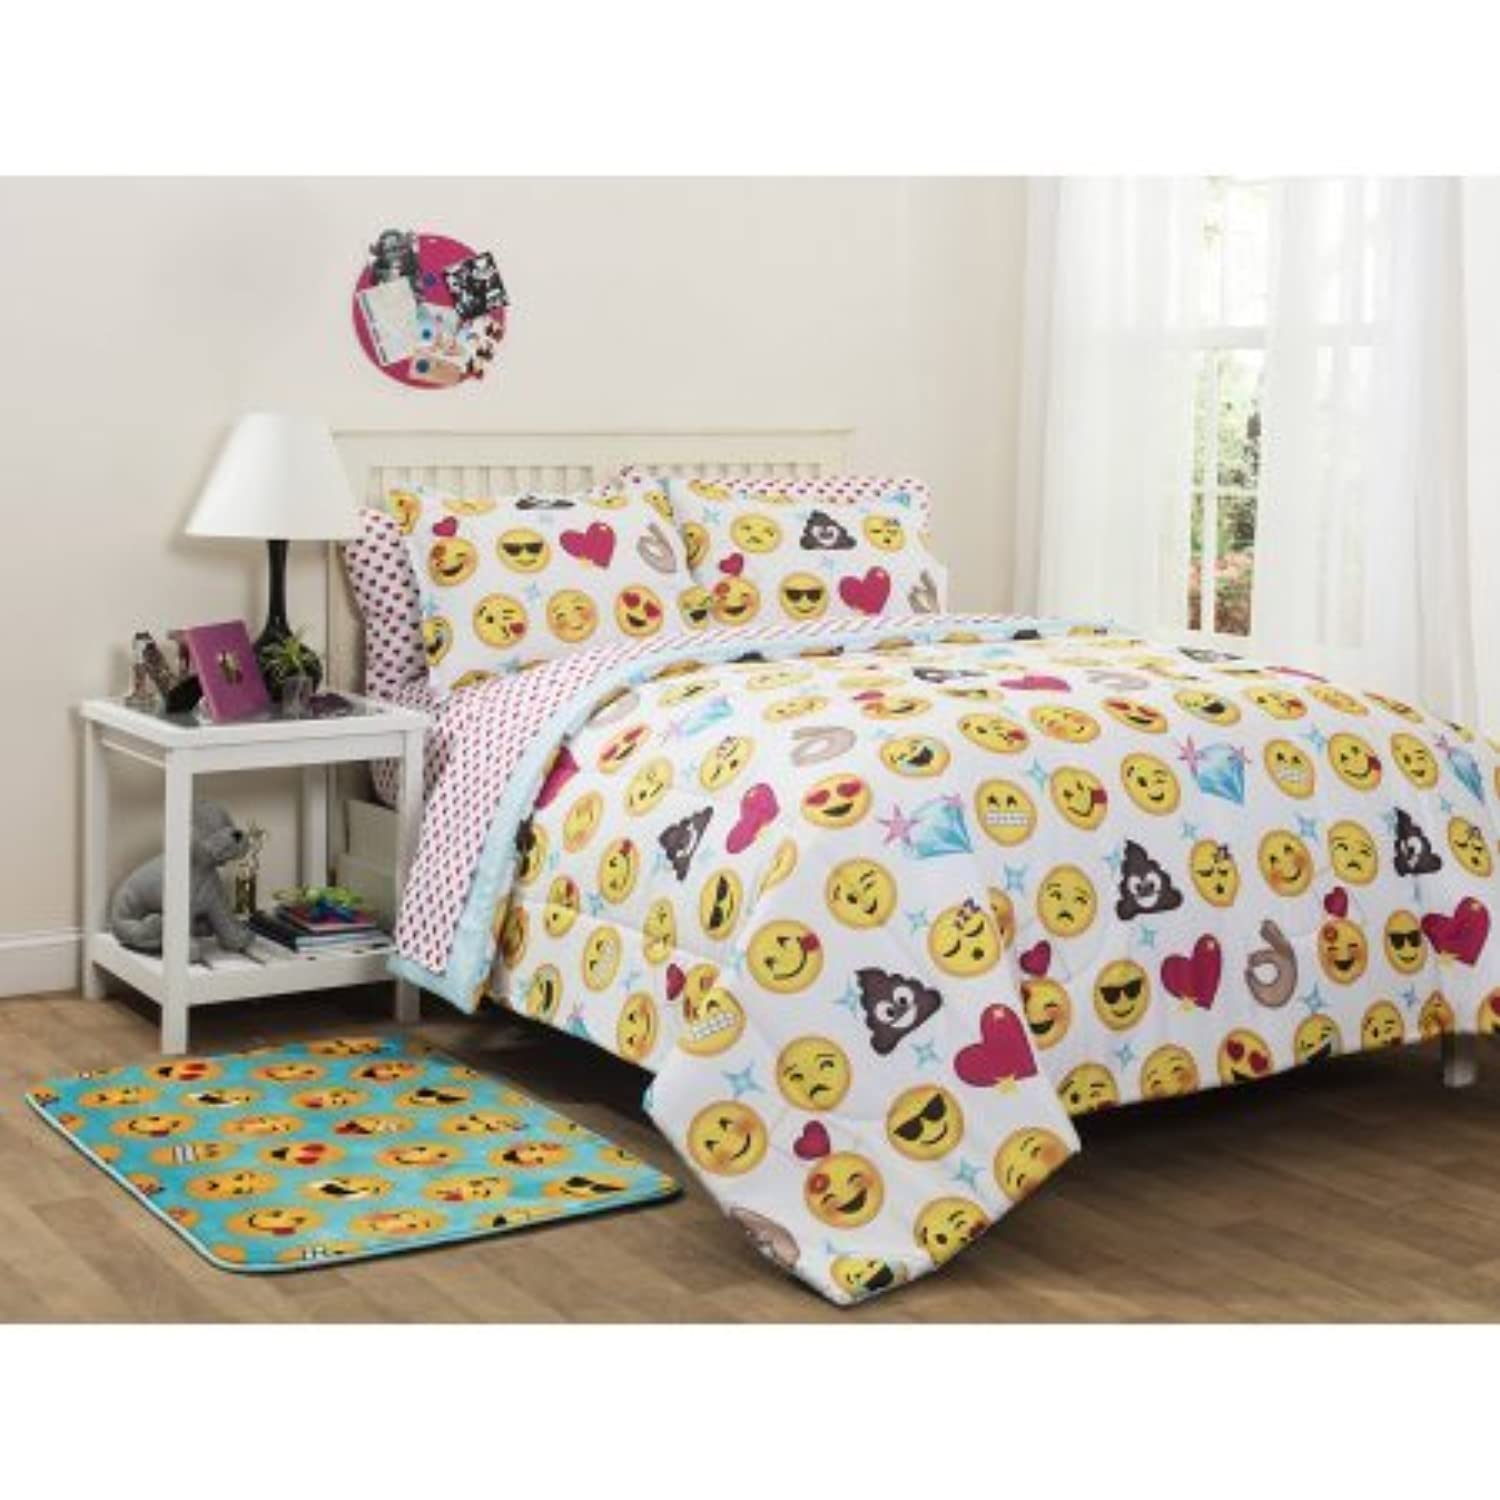 Emoji Bed Comfortor Bedding Sets Full Size